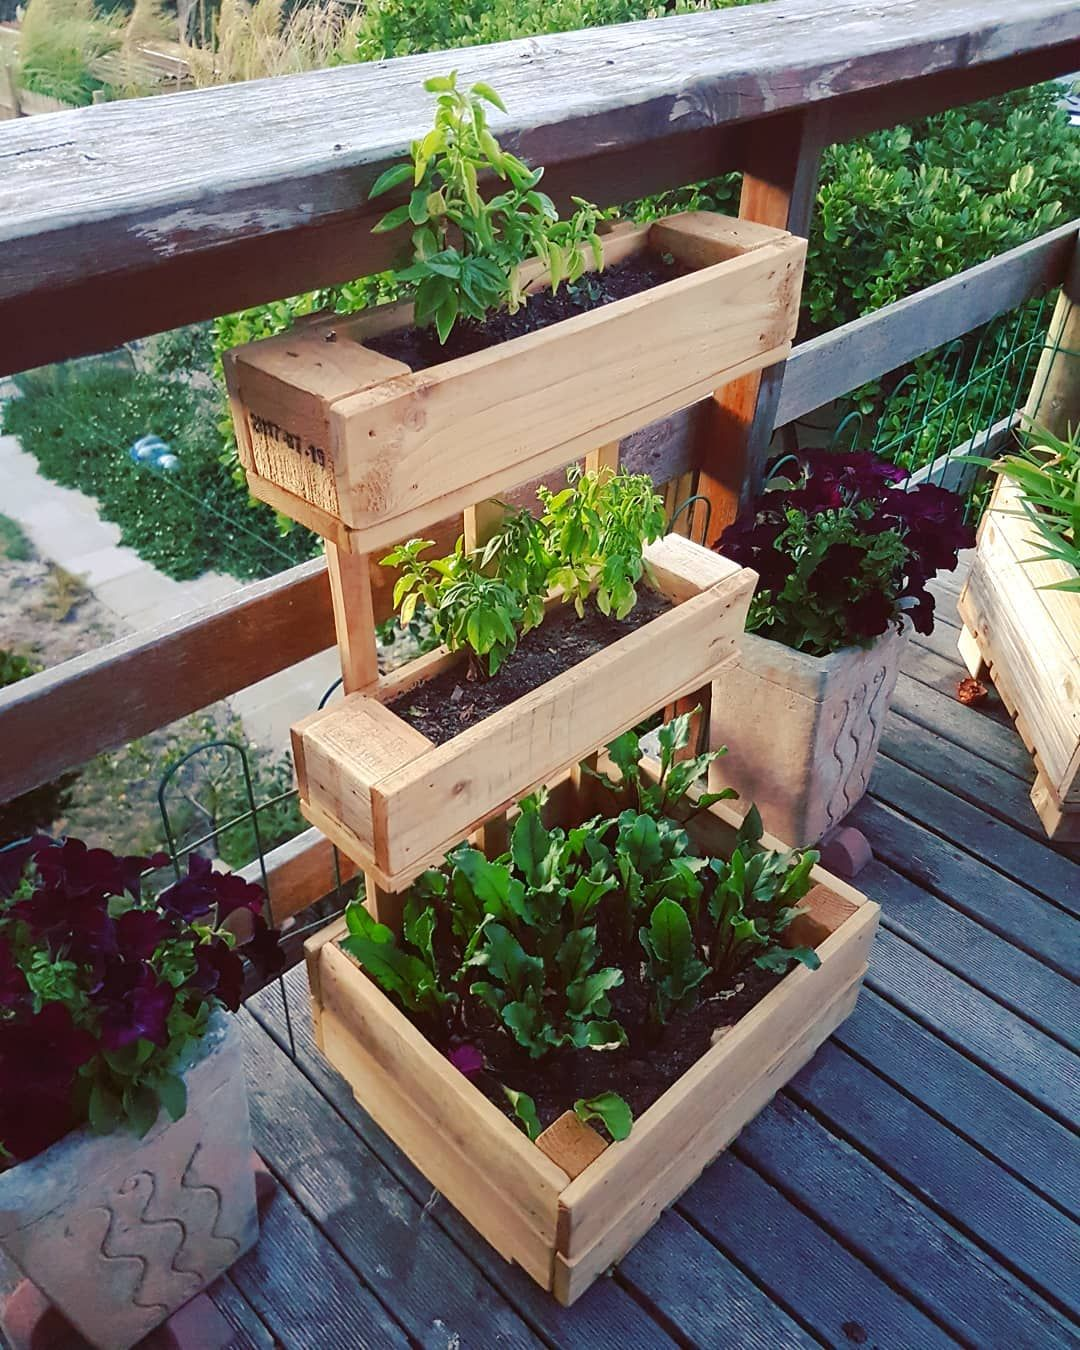 Creative Ideas For Wooden Pallets Recycled Planters Wood Pallet Planters Diy Planters Outdoor Pallets Garden